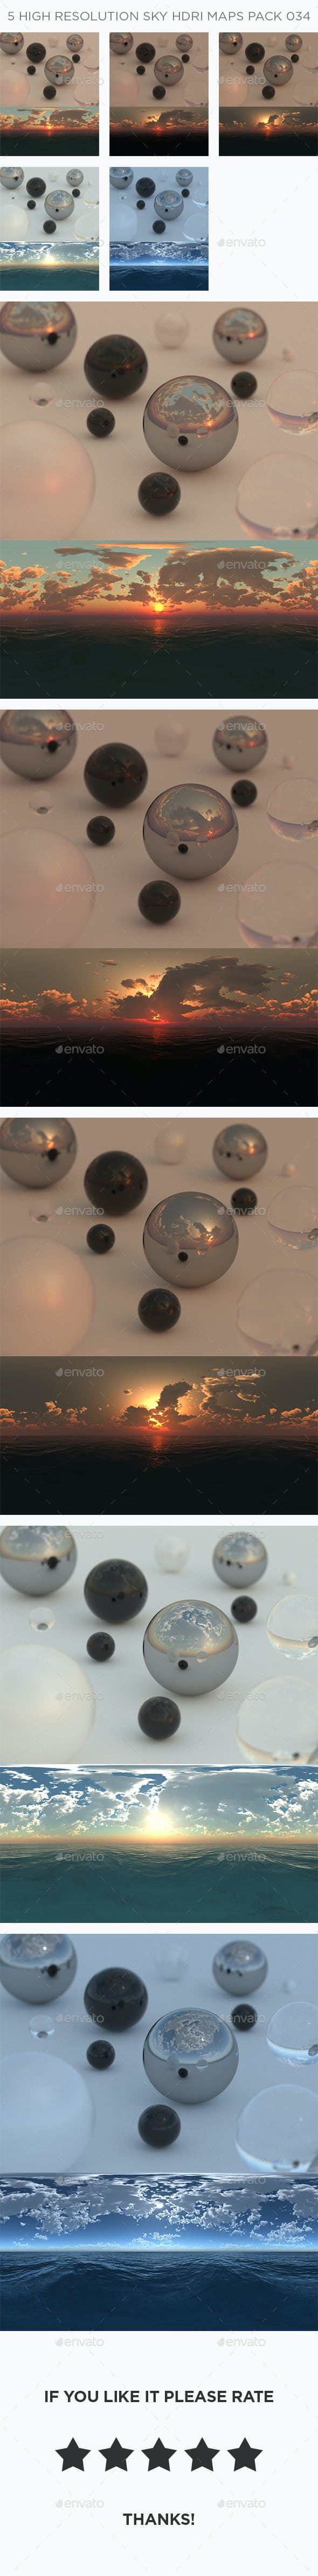 5 High Resolution Sky HDRi Maps Pack 034 - 3DOcean Item for Sale